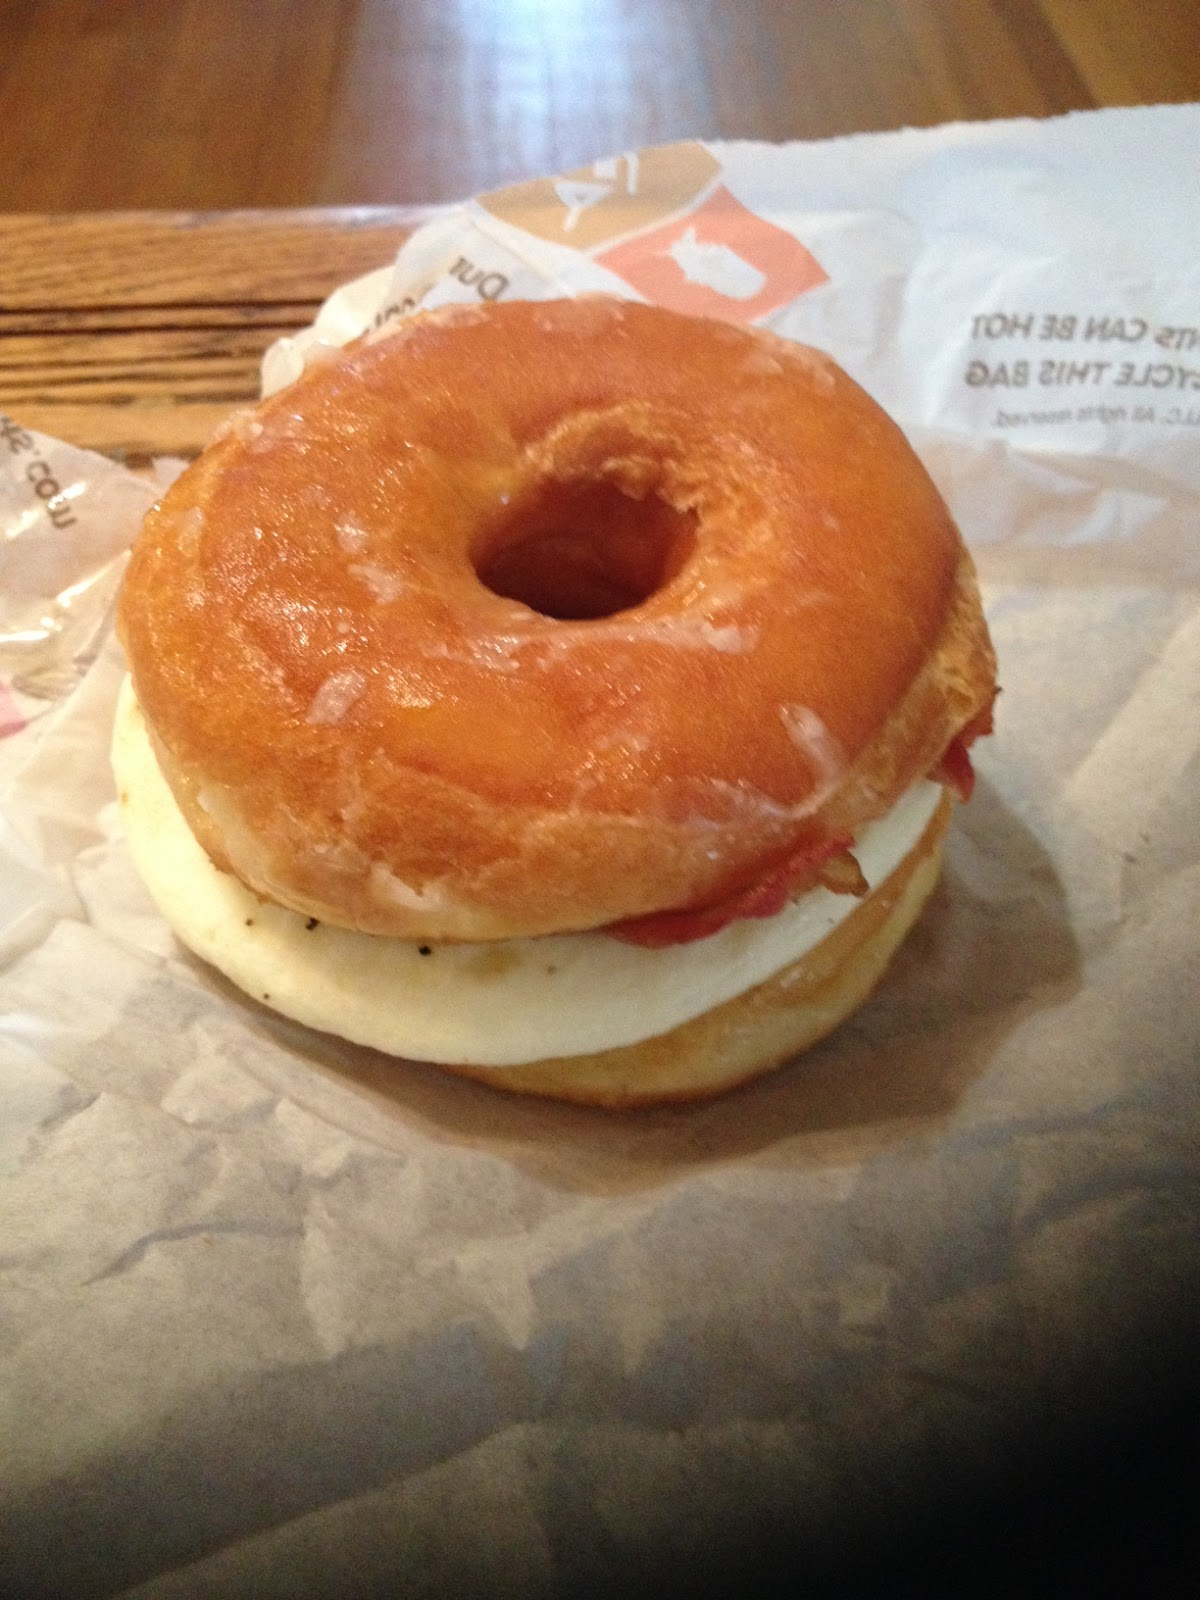 Bacon Egg And Cheese Dunkin Donuts Donut Bacon Egg Cheese